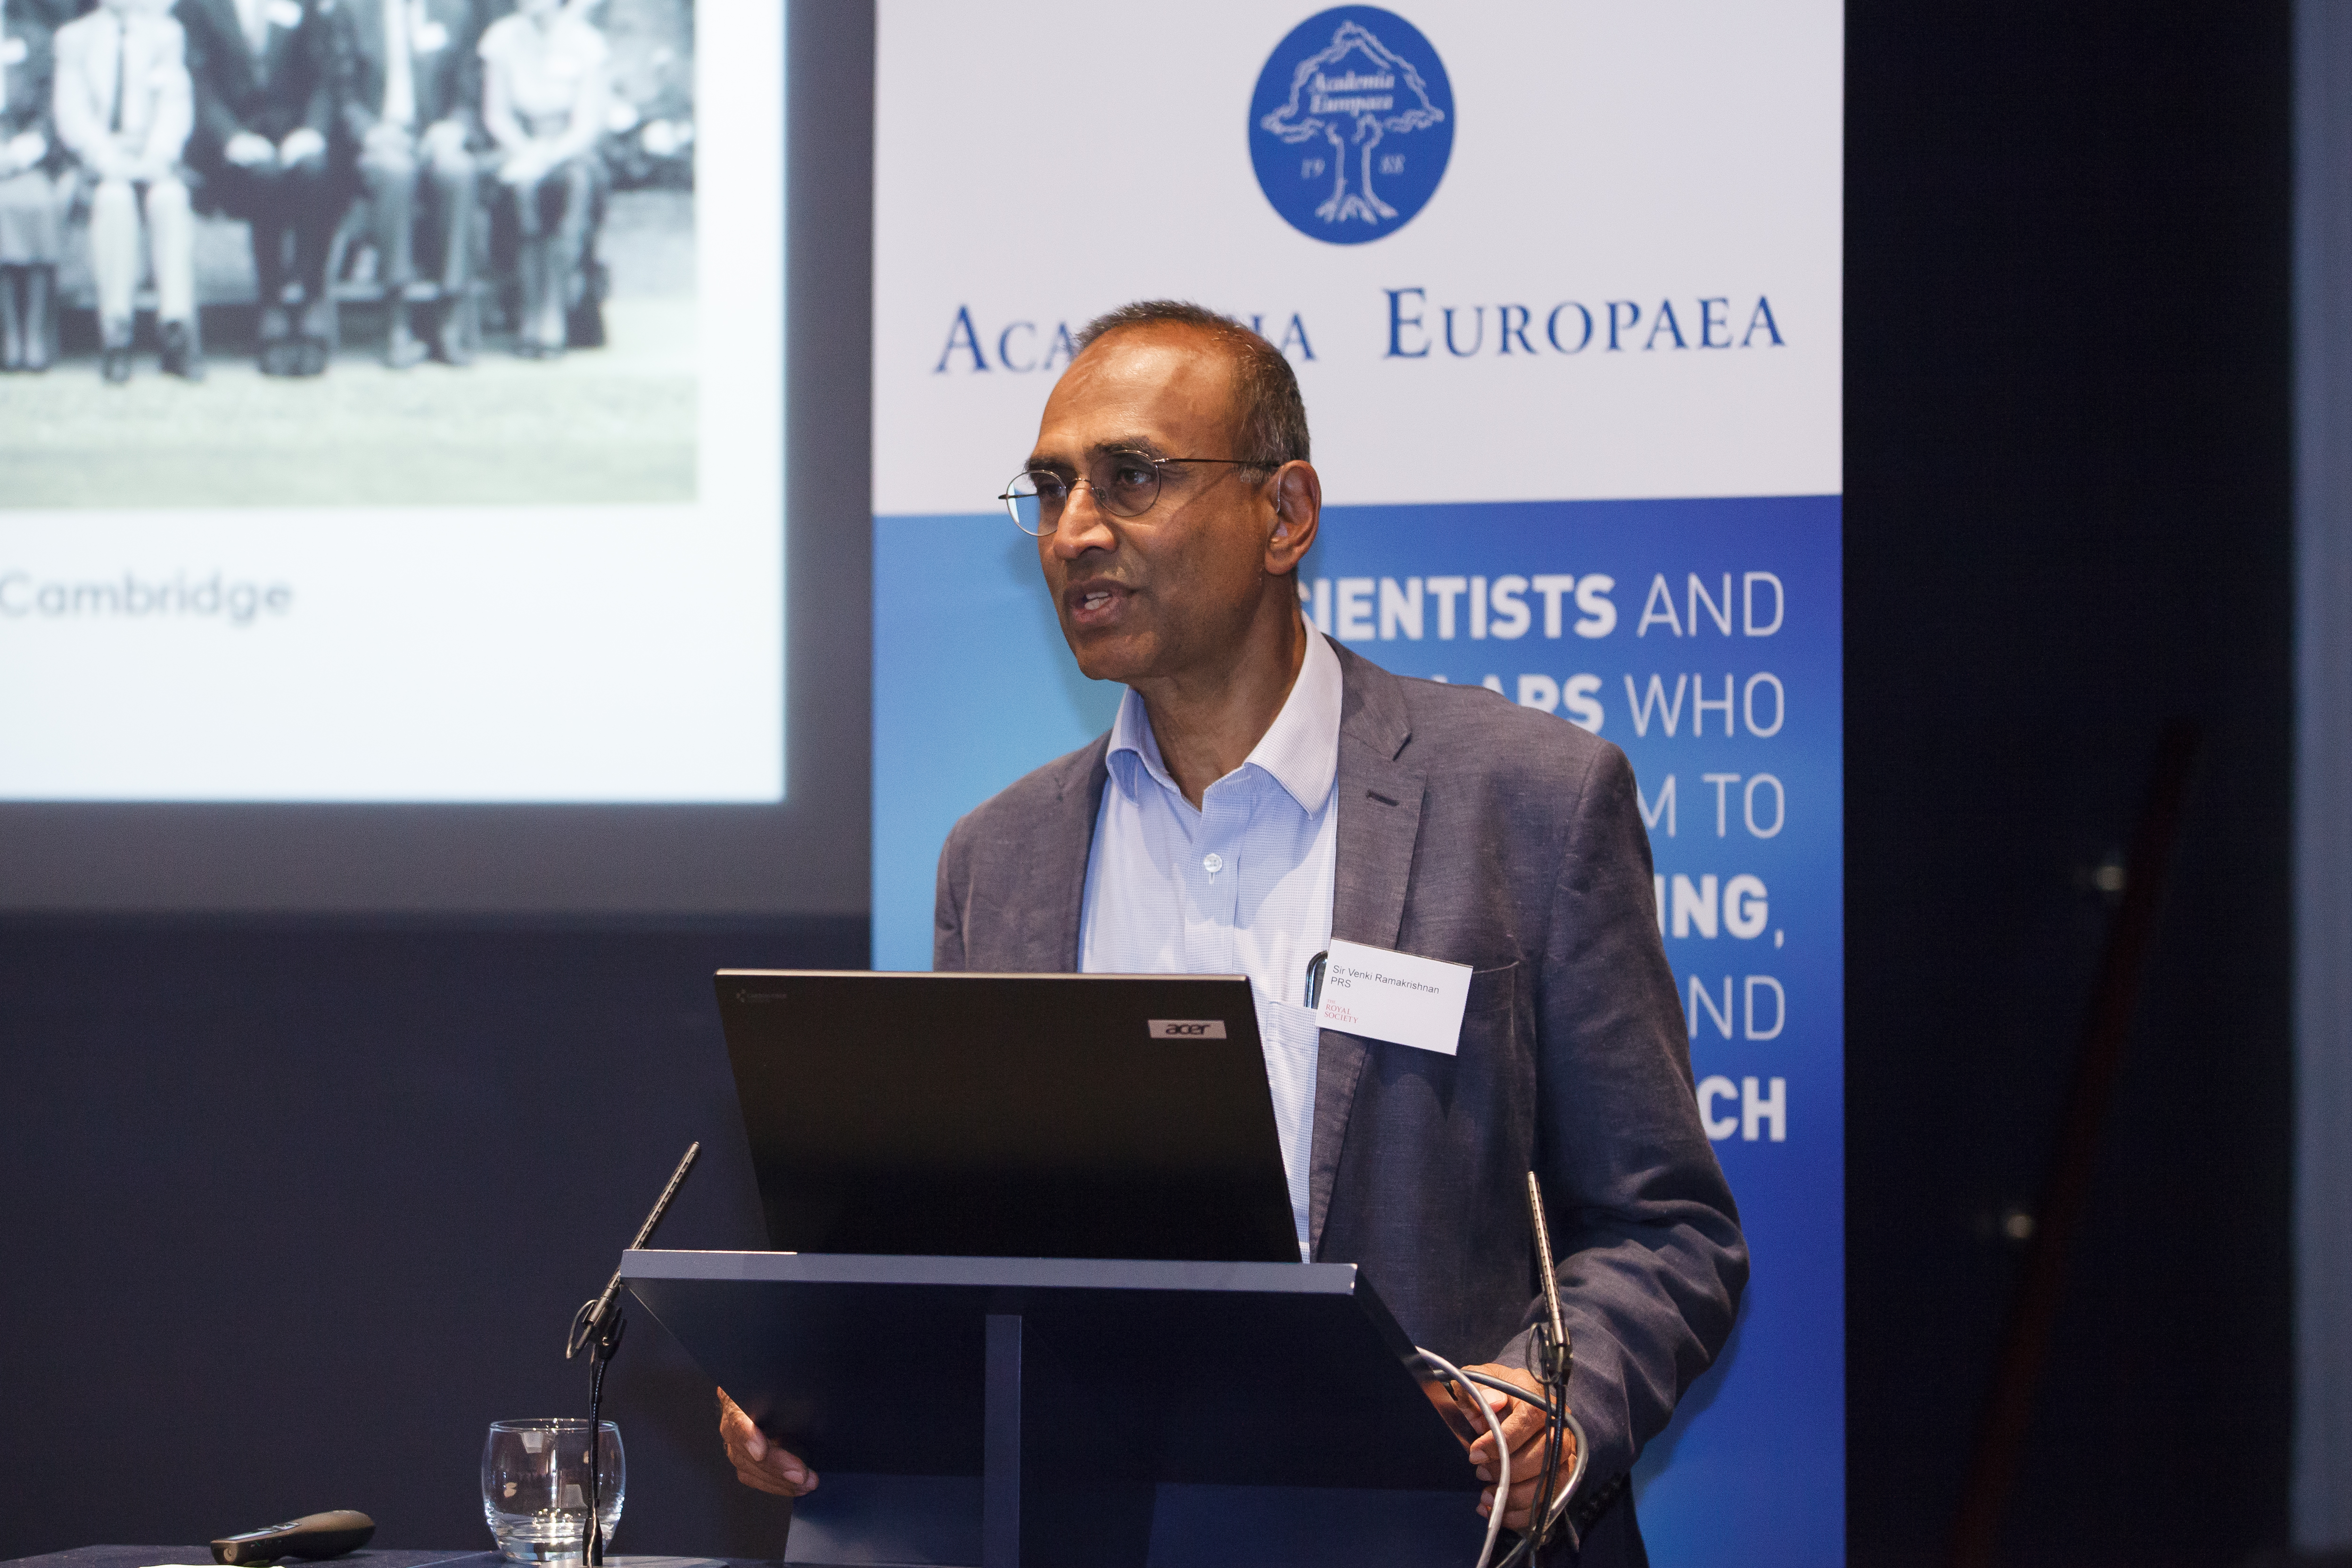 Sir Venki Ramakrishnan, President of the Royal Society